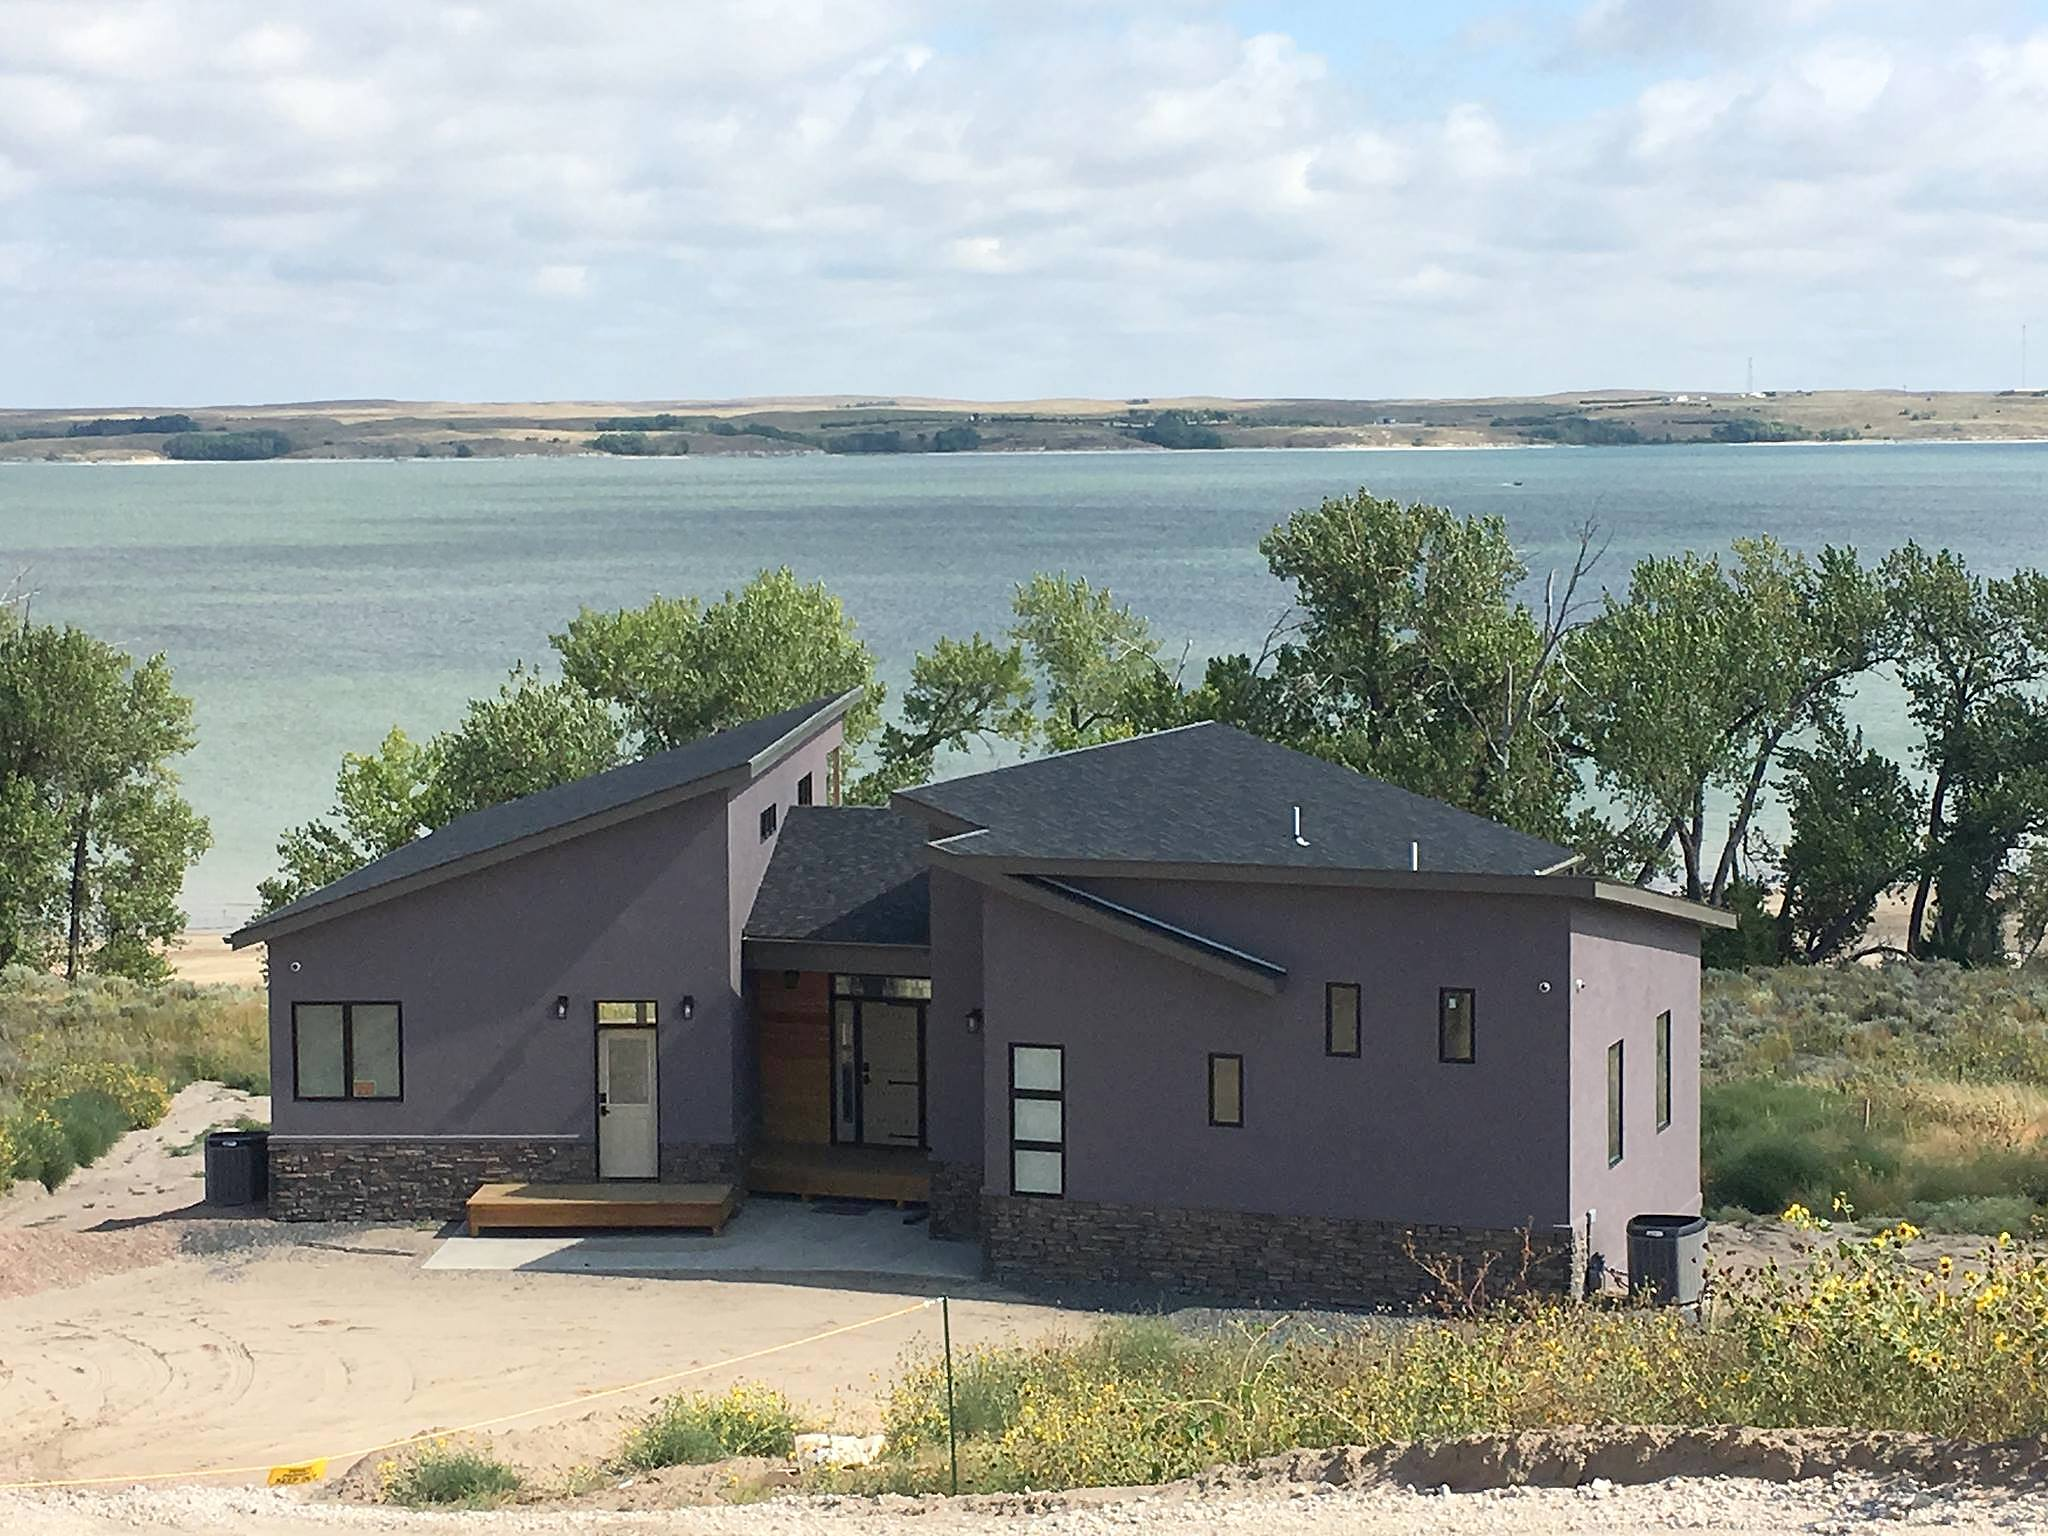 5 Bedrooms / 3.5 Bathrooms - Est. $5,002.00 / Month* for rent in Brule, NE